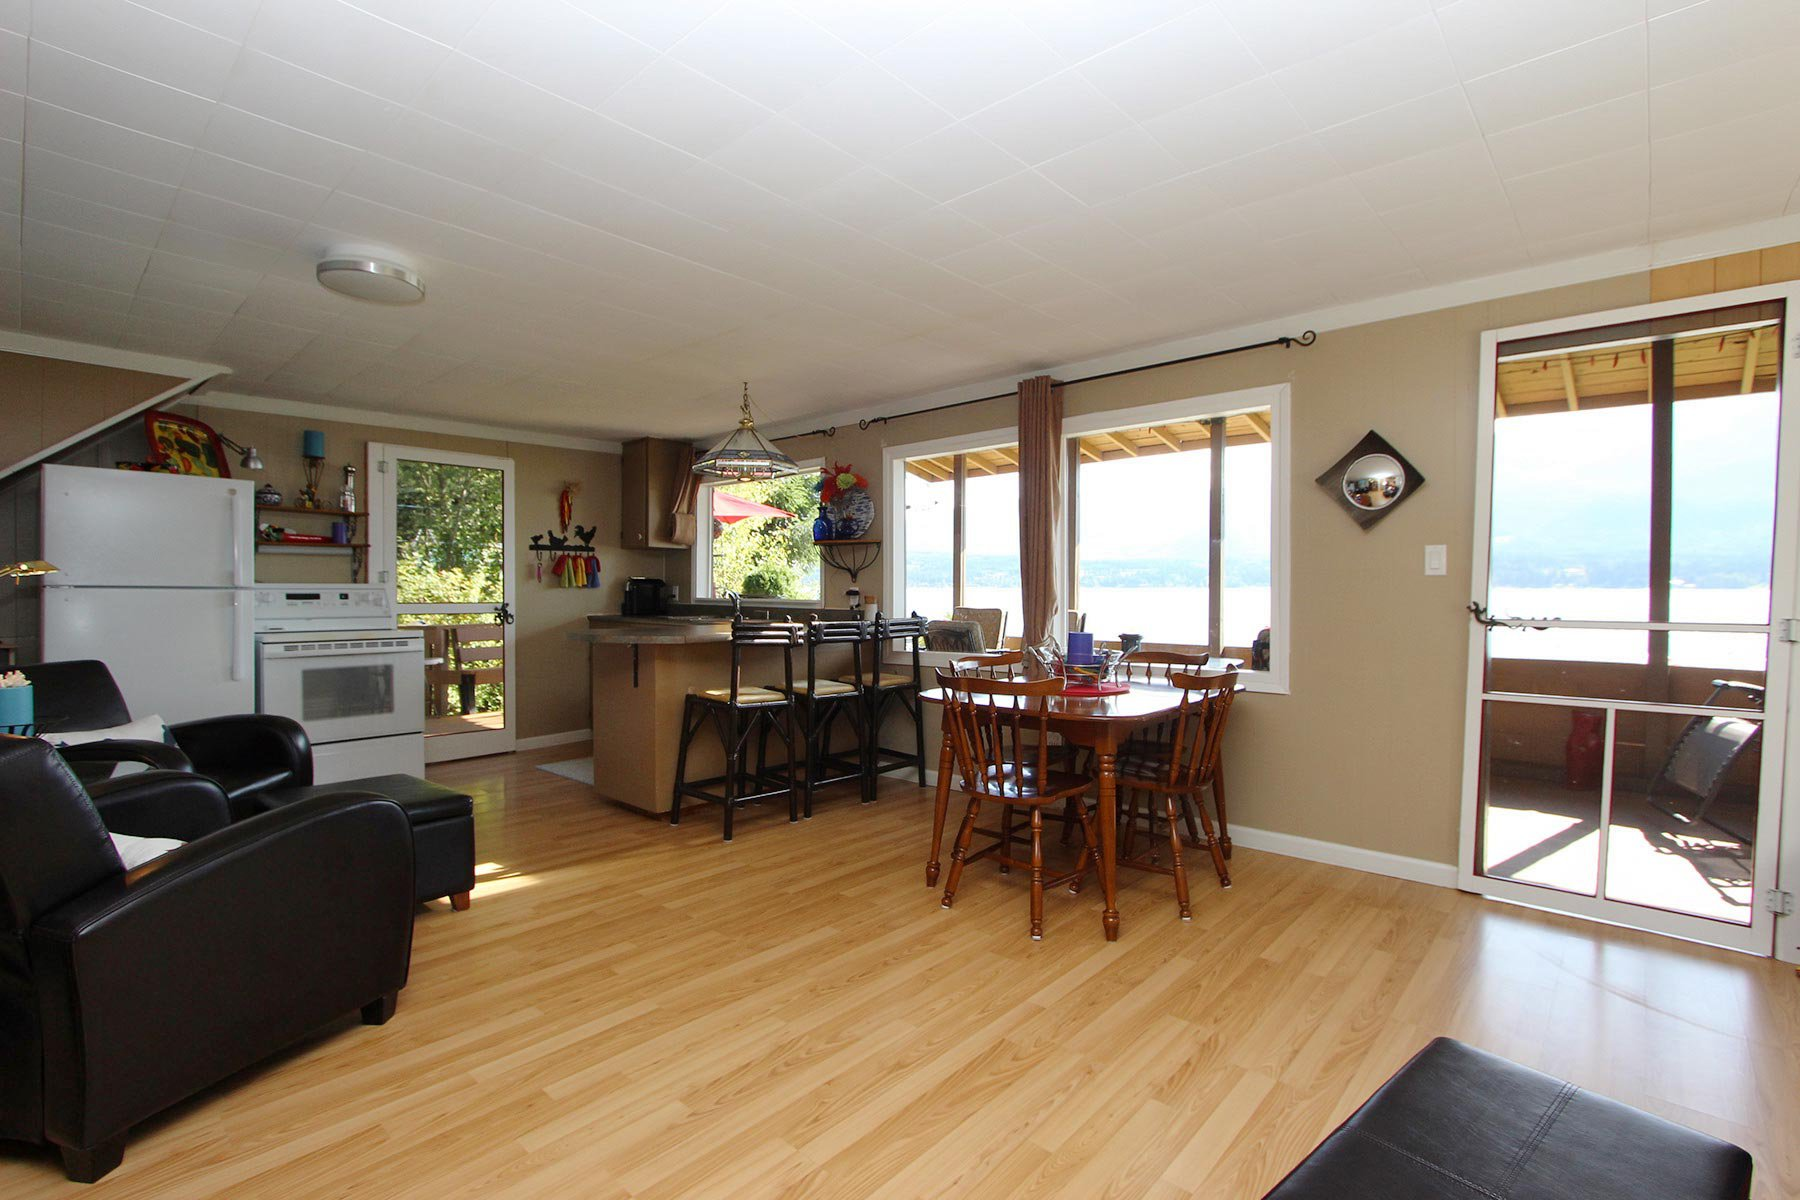 Photo 23: Photos: 3620 Hilliam Frontage Road in Scotch Creek: House for sale : MLS®# 10217240